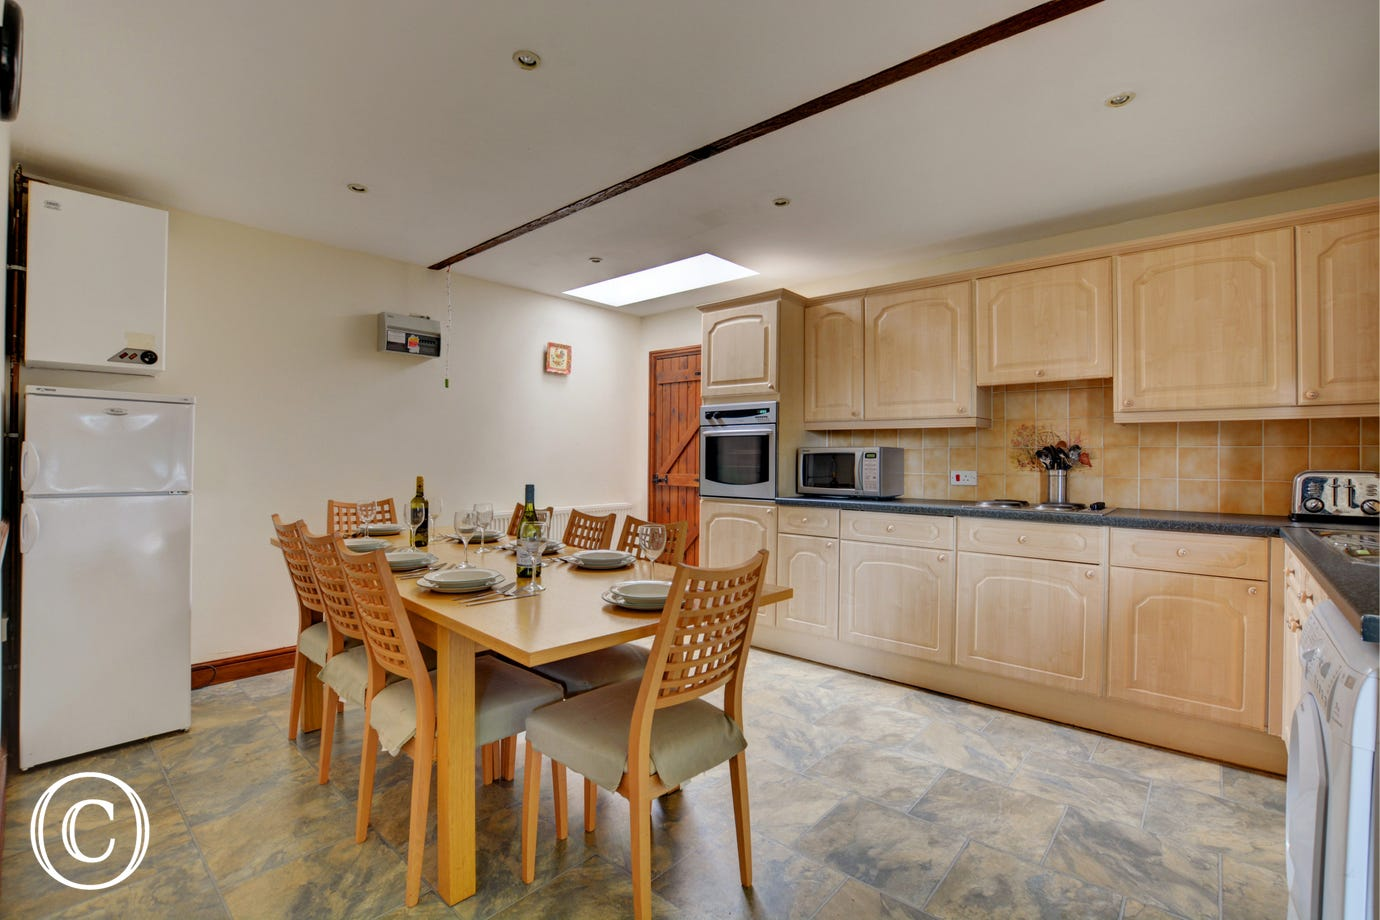 Spacious modern kitchen with most major appliances and a table and chairs to seat 8, ideal for family meals